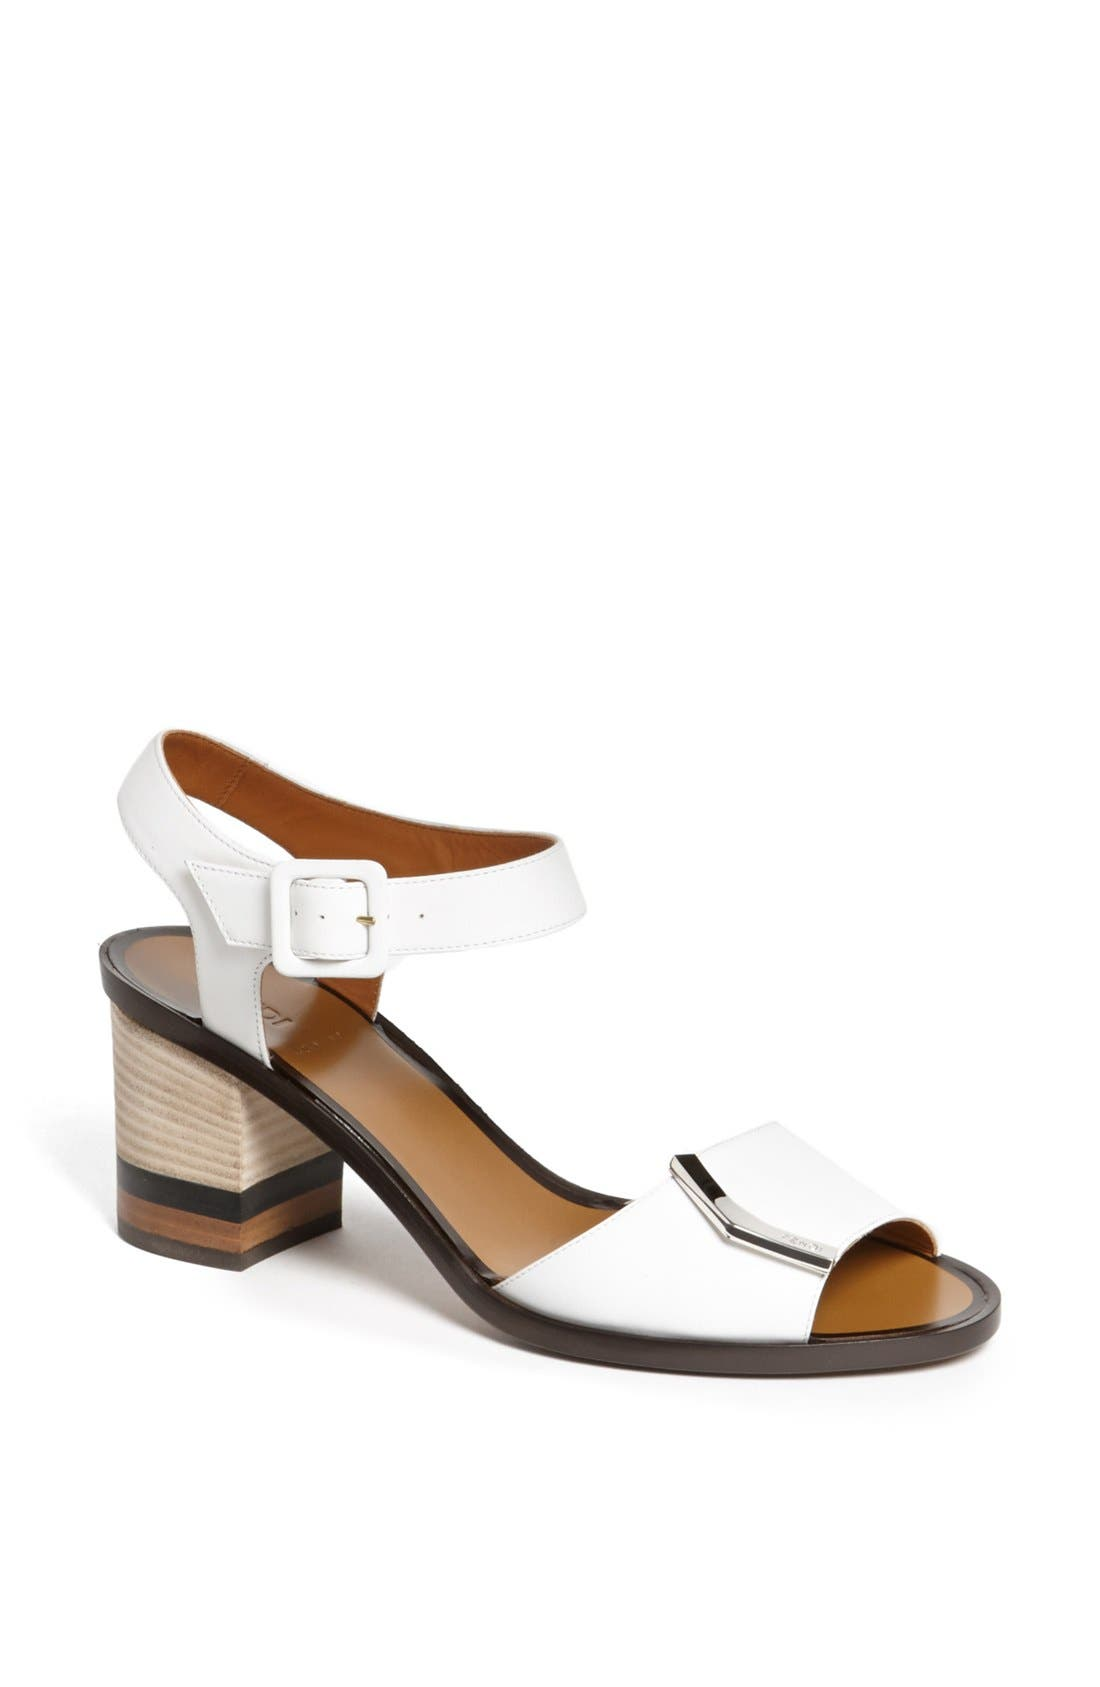 Alternate Image 1 Selected - Fendi 'Demetra' Block Heel Sandal